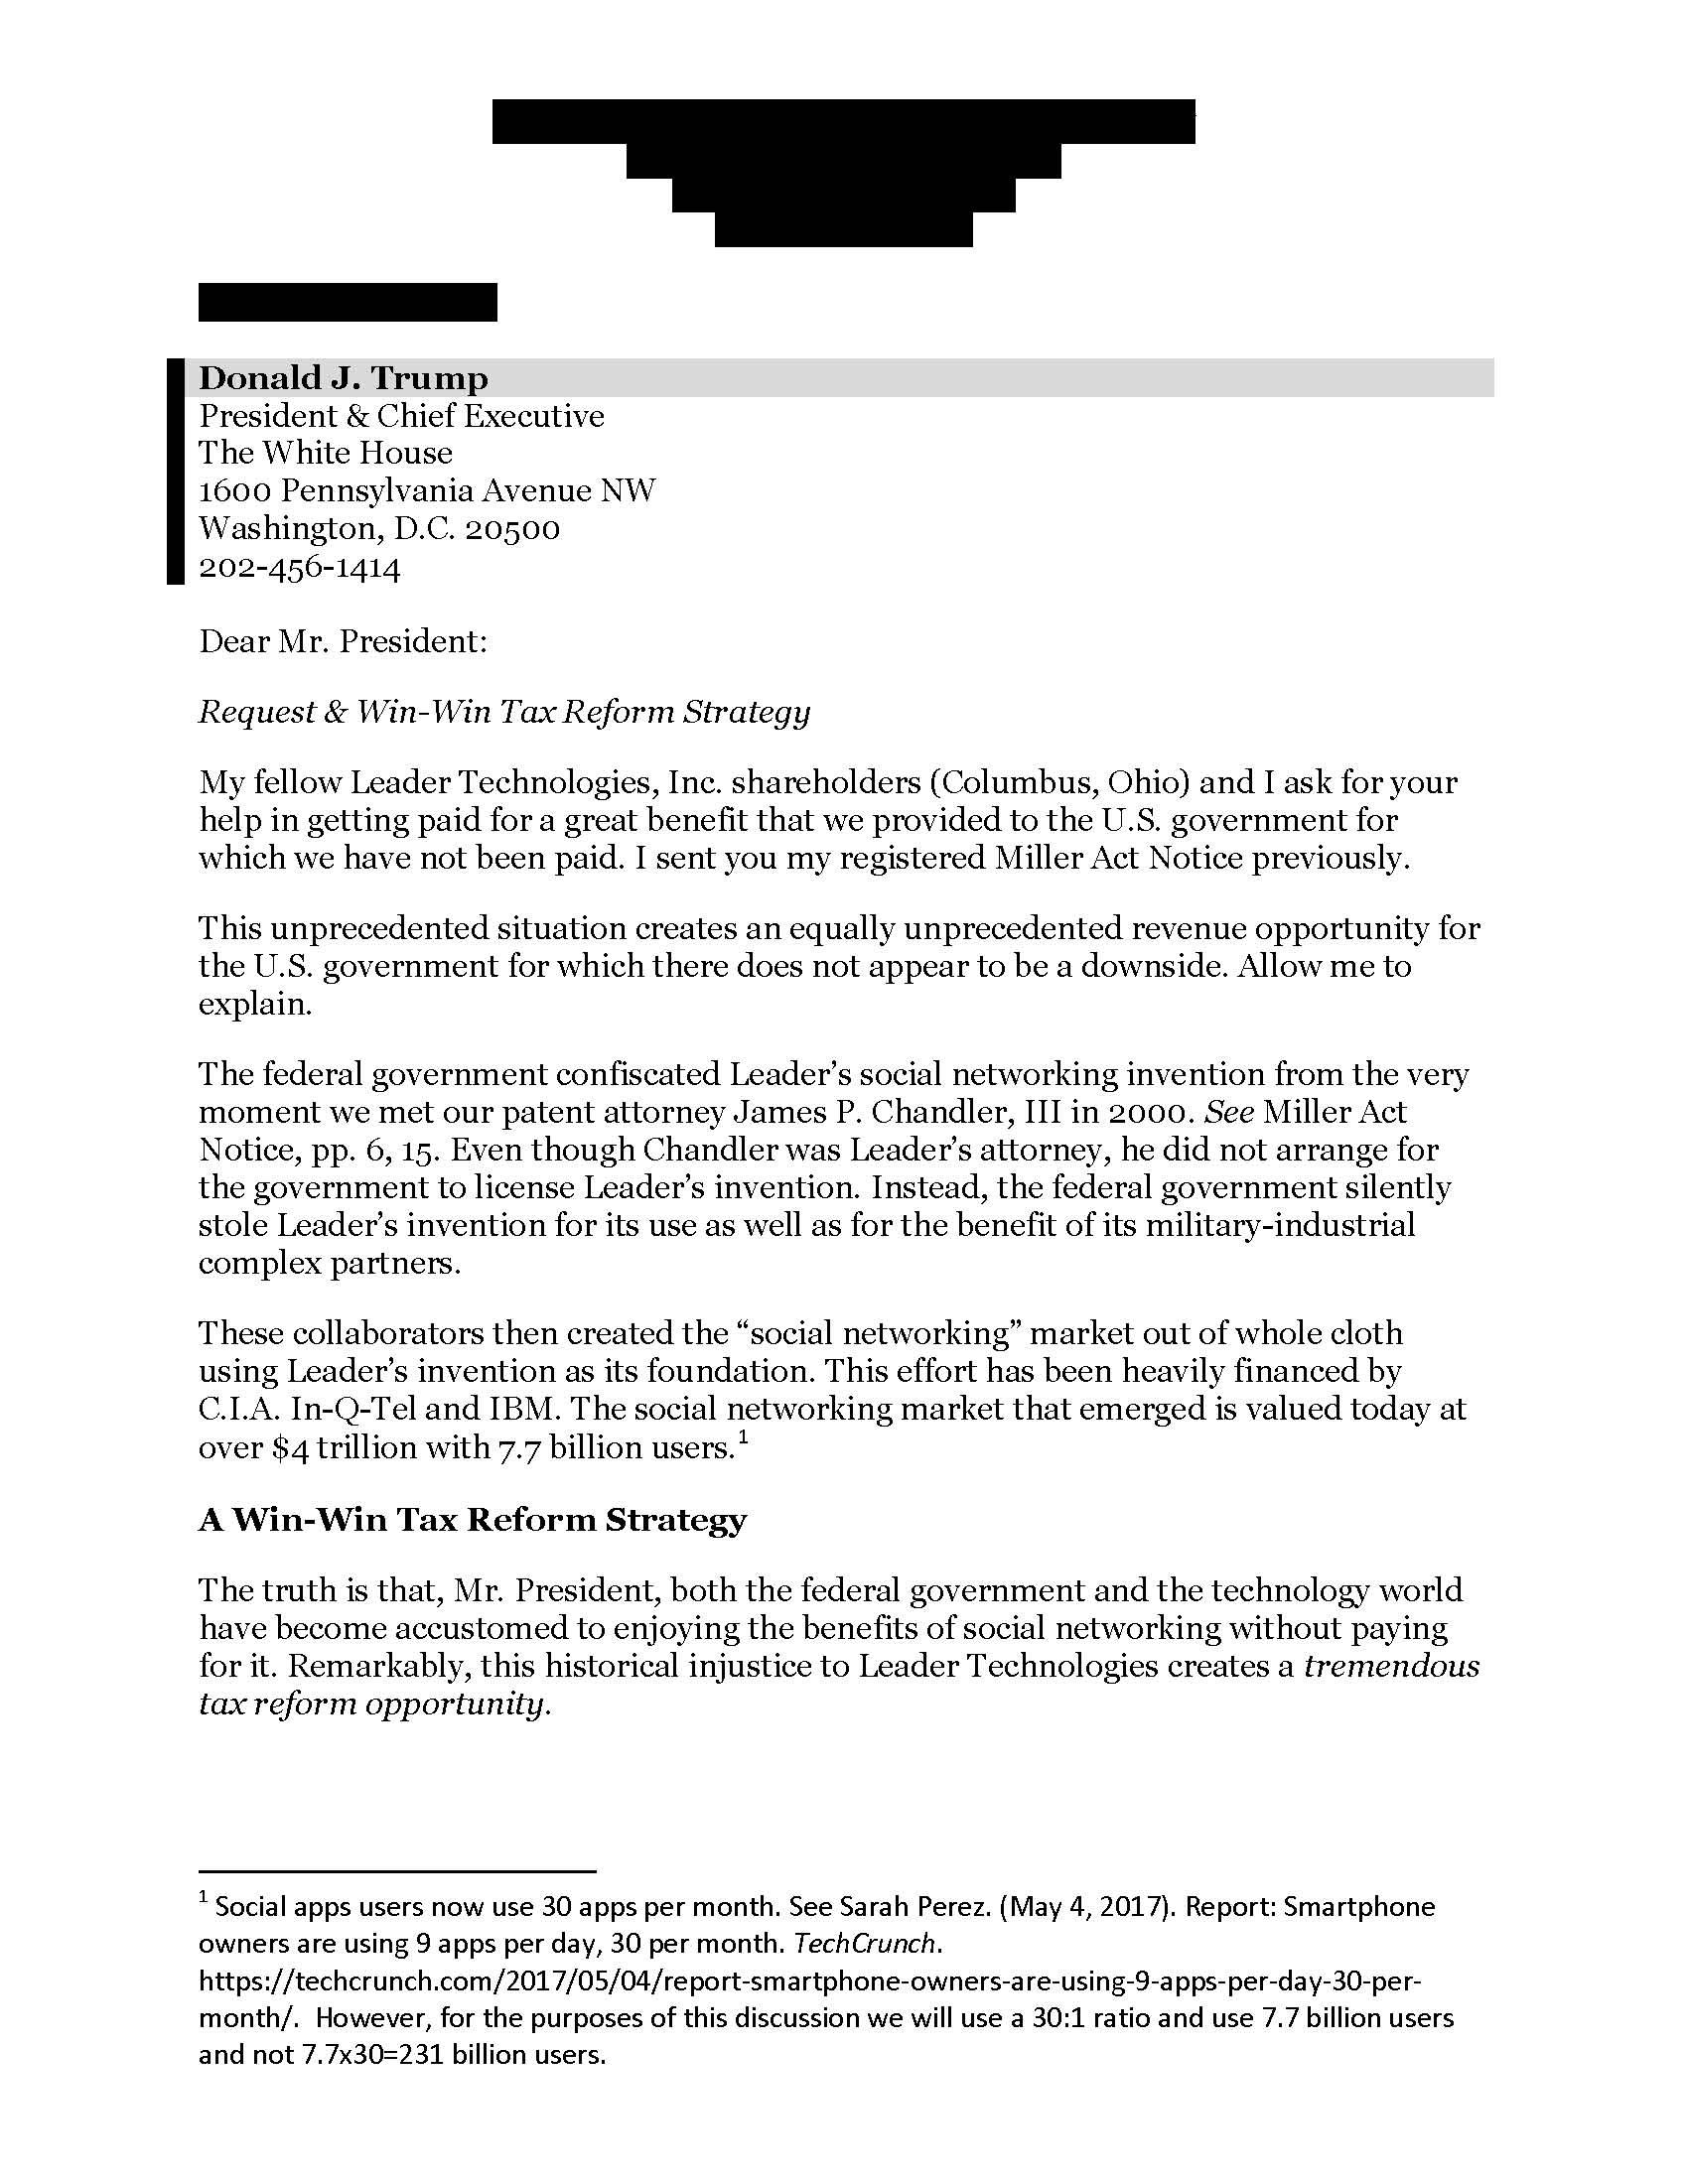 Leader Technologies Tier II Miller Act Notice cover letter to Donald Trump, Sep. 29, 2017, page 1